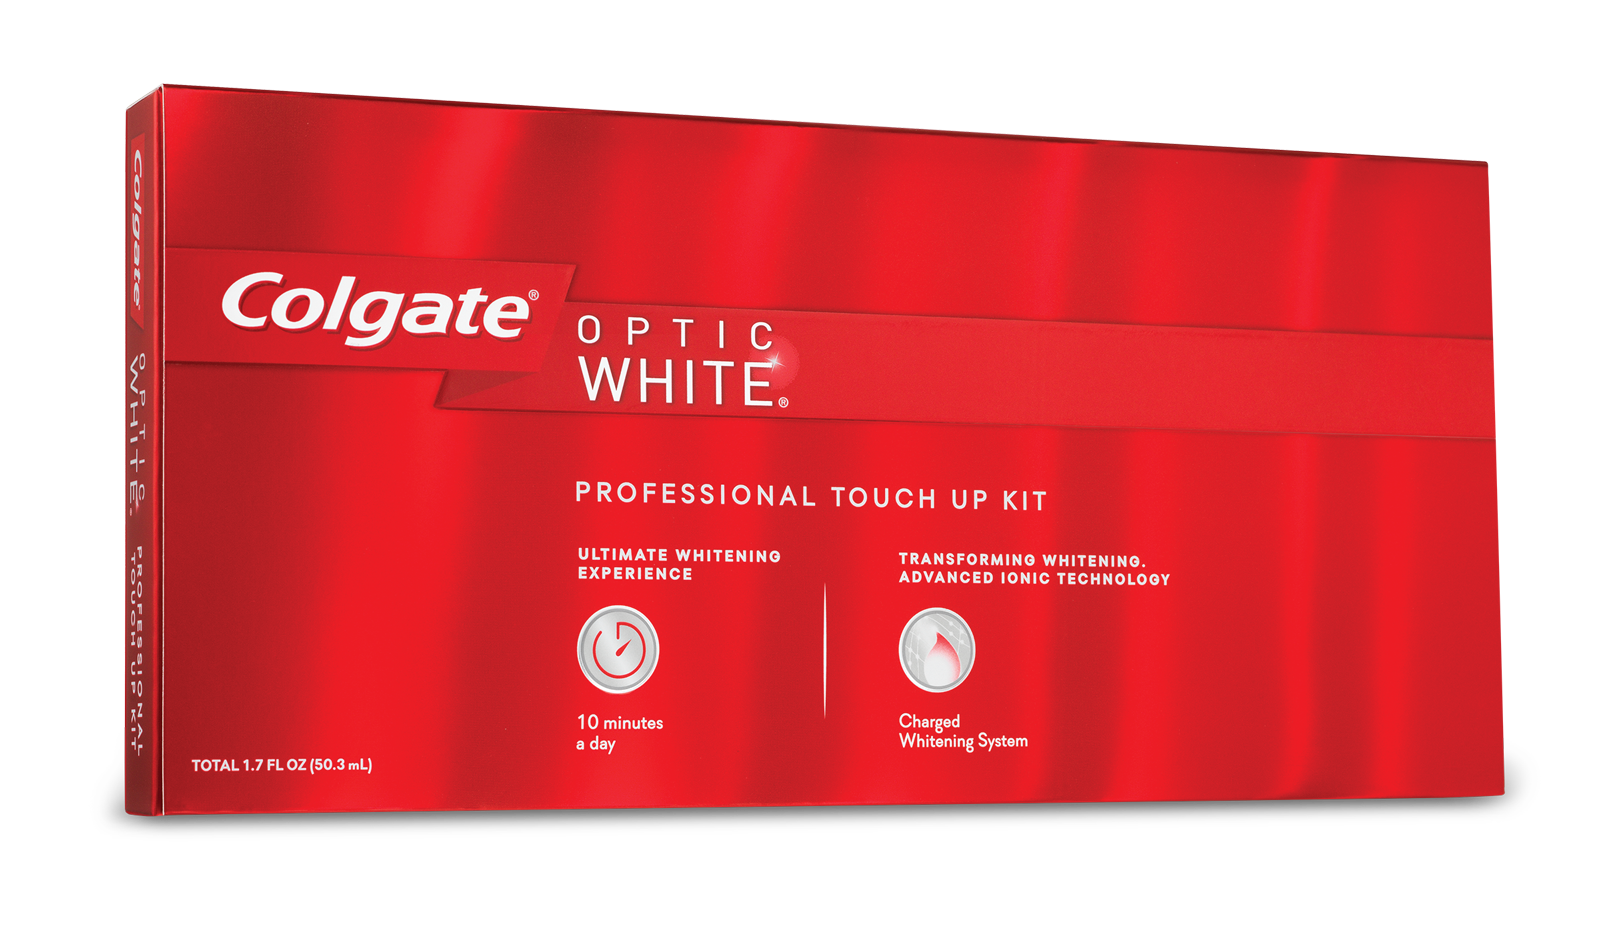 Colgate Optic White Professional Touch-up Kit